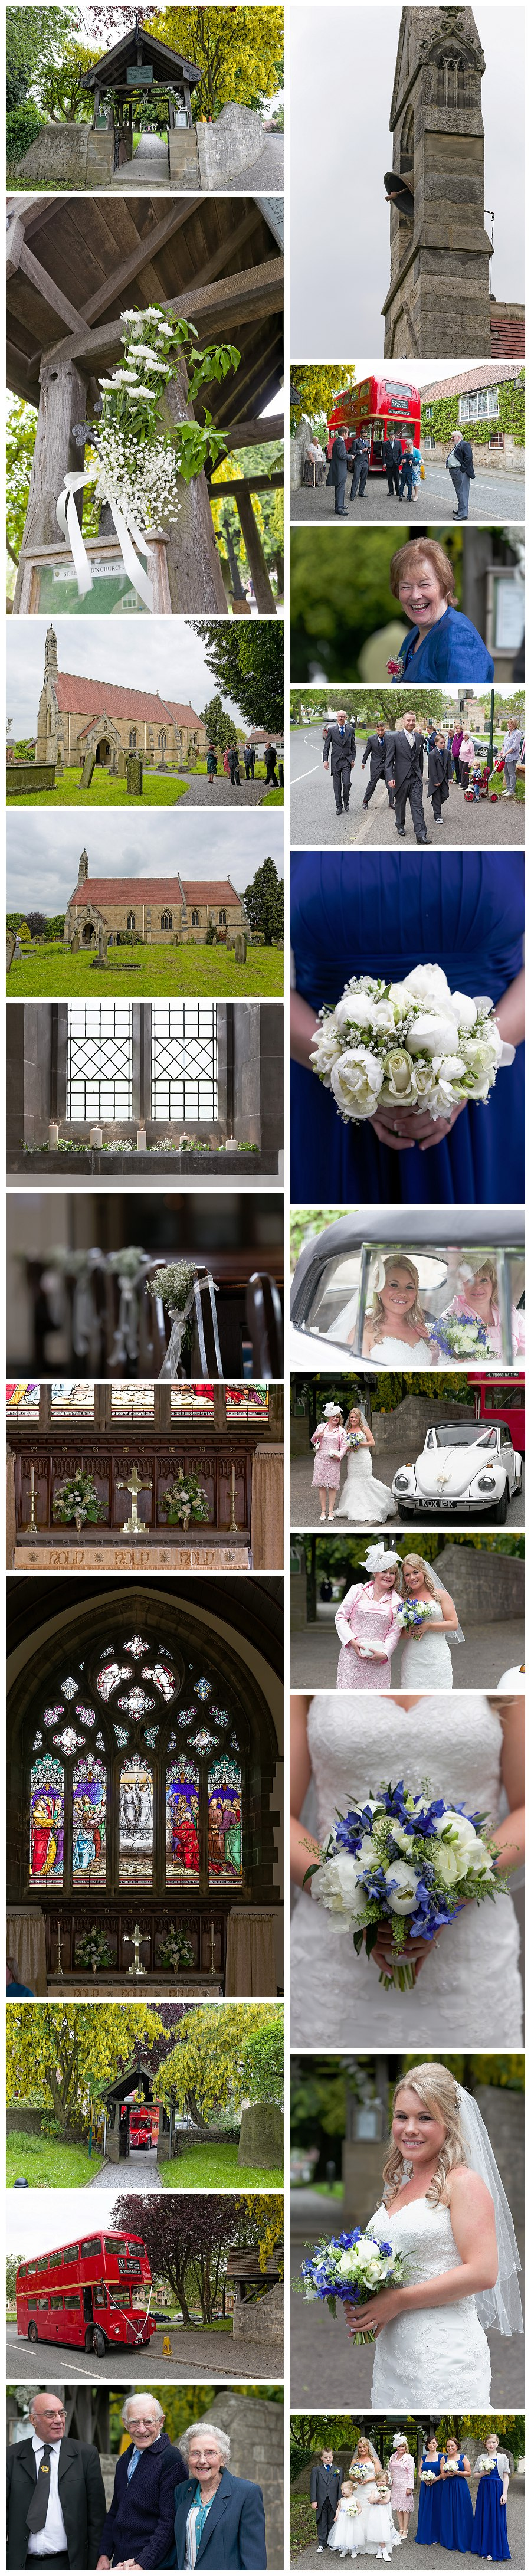 Wedding Photographers Yorkshire, wedding photography st leonards church burton leonard